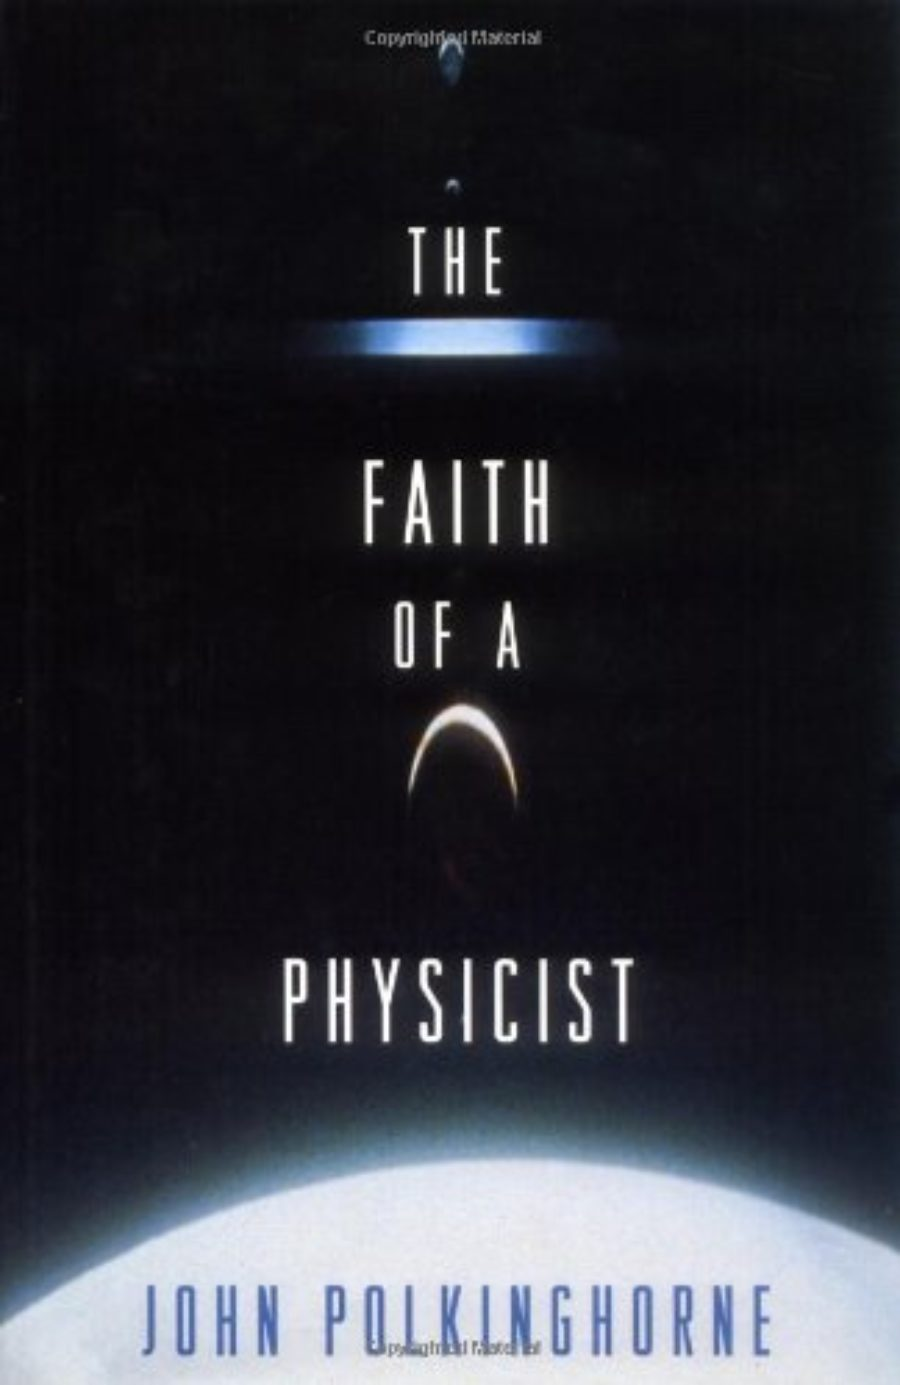 Cover of The Faith of a Physicist